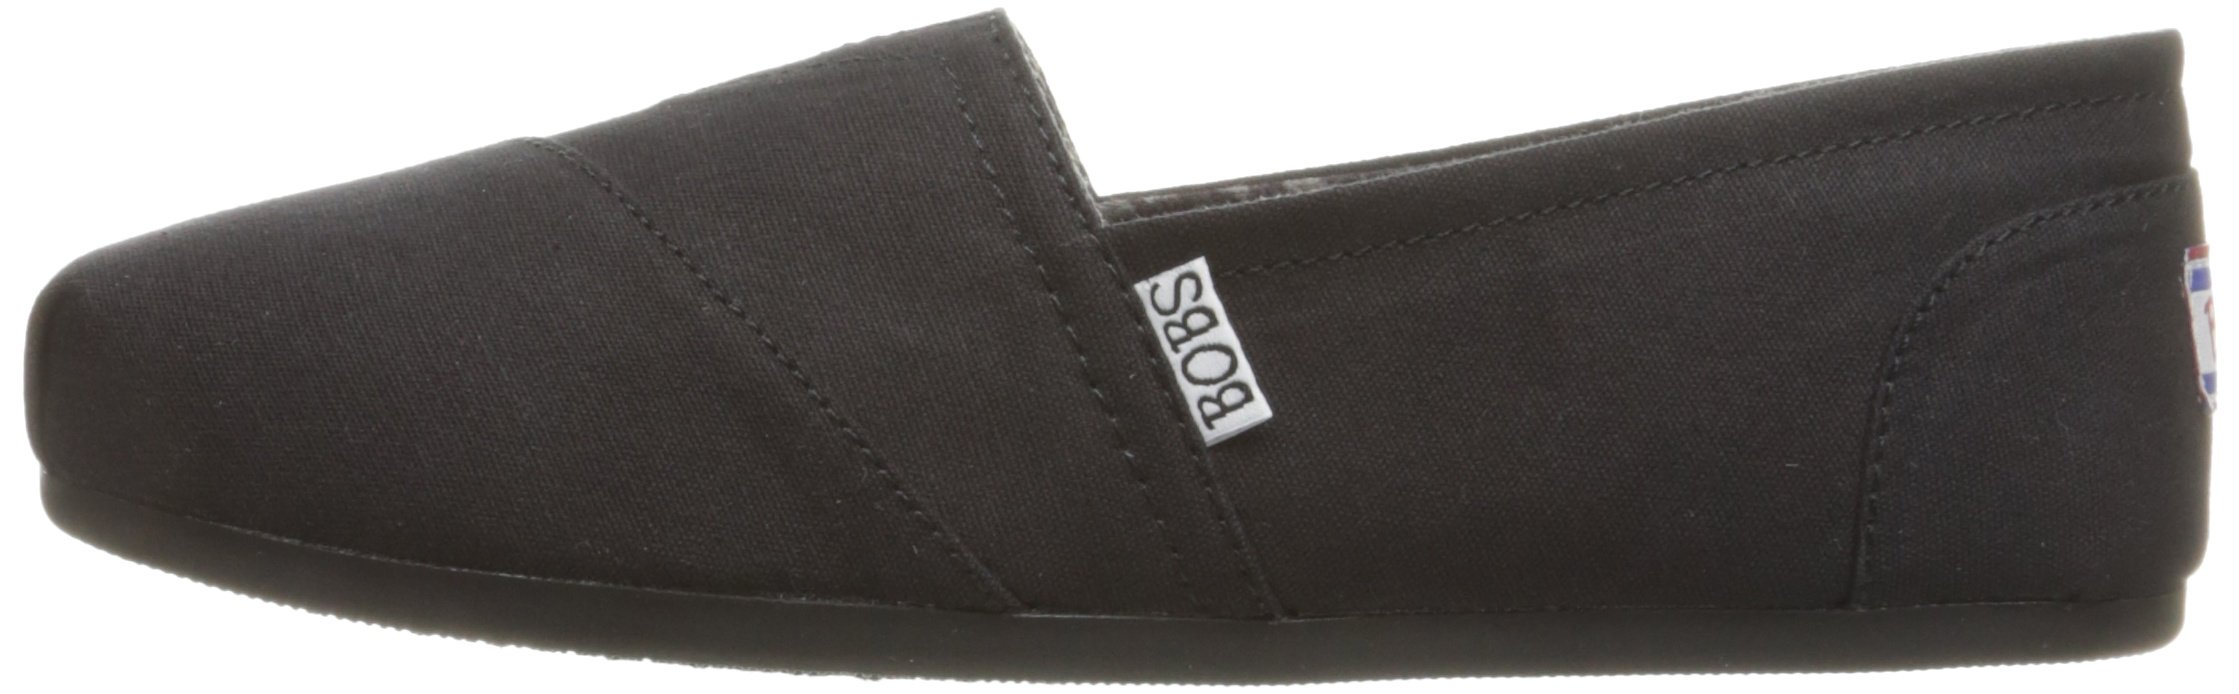 Skechers BOBS from Women's Plush - Peace and Love Flat, Black, 9.5 W US by Skechers (Image #5)